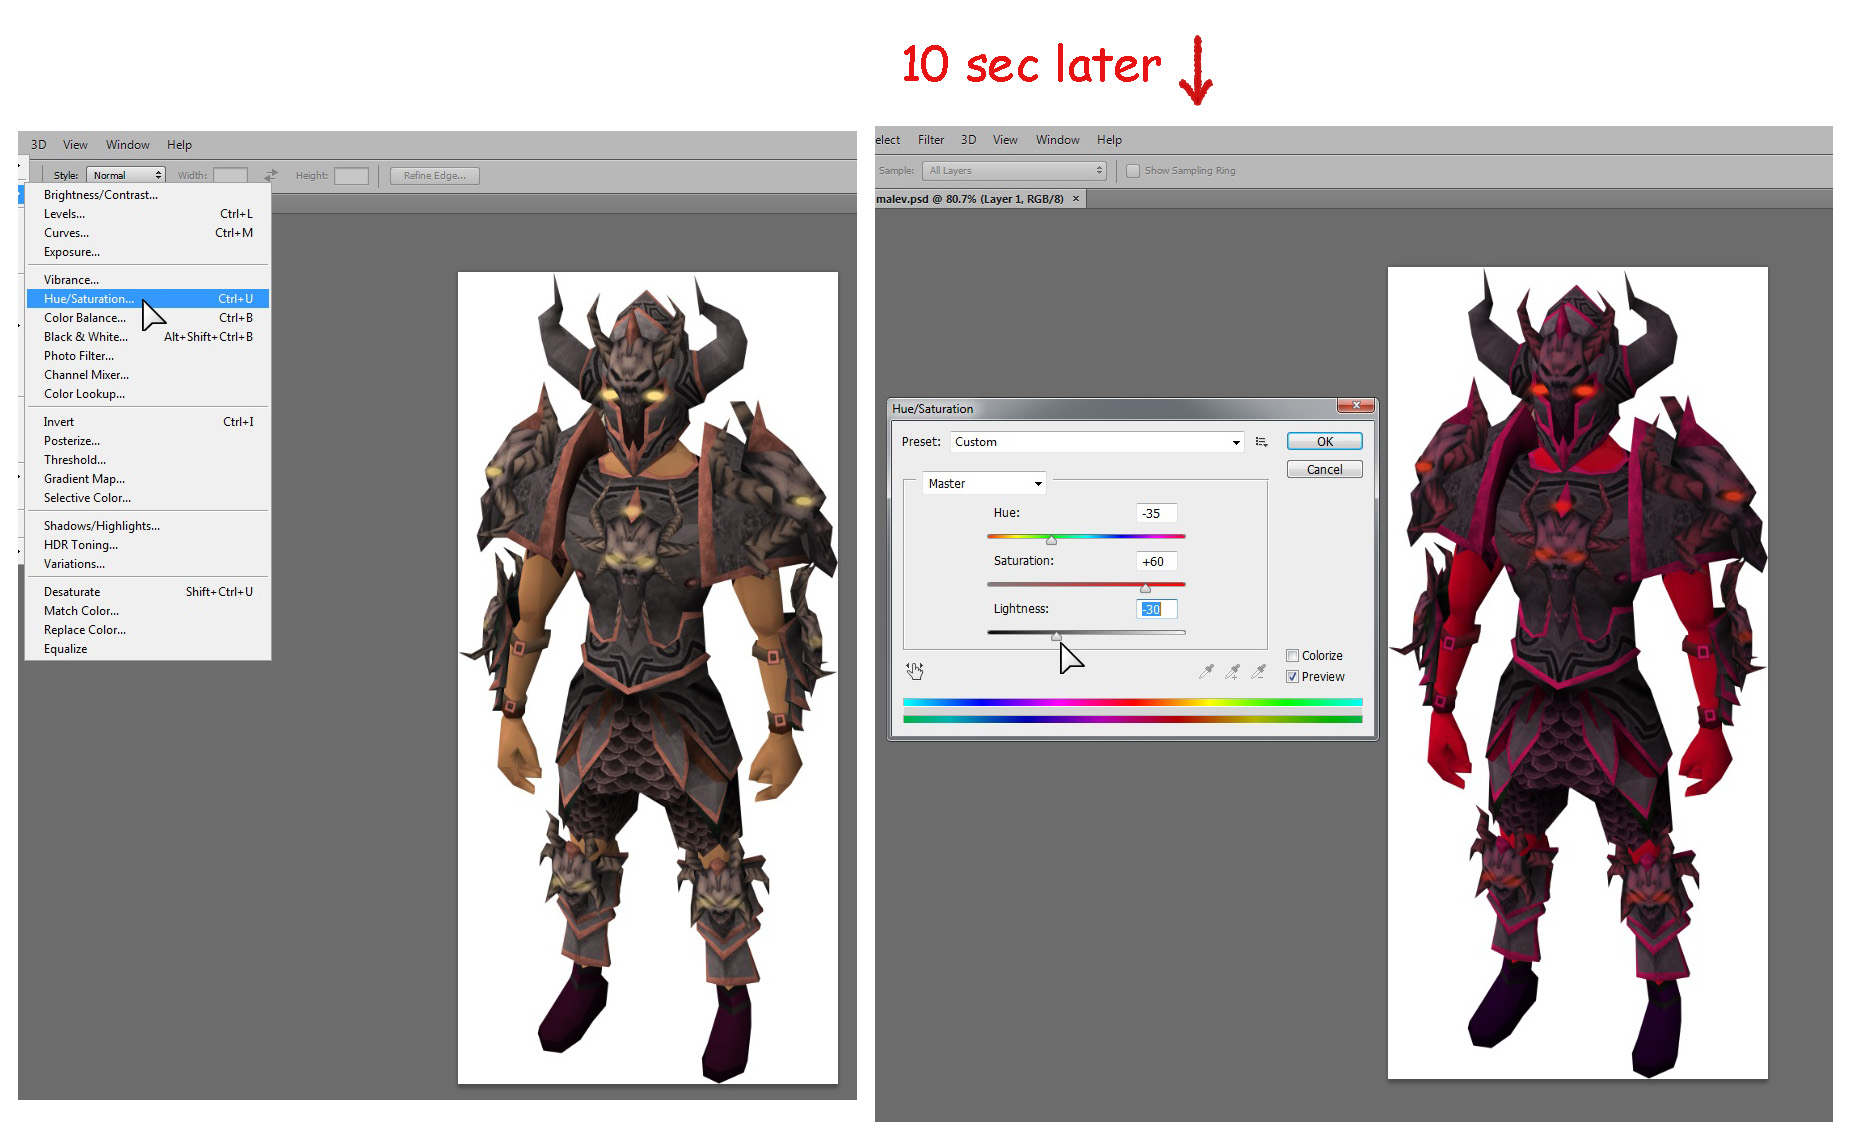 Drawn scythe blood In 10 runescape textures So